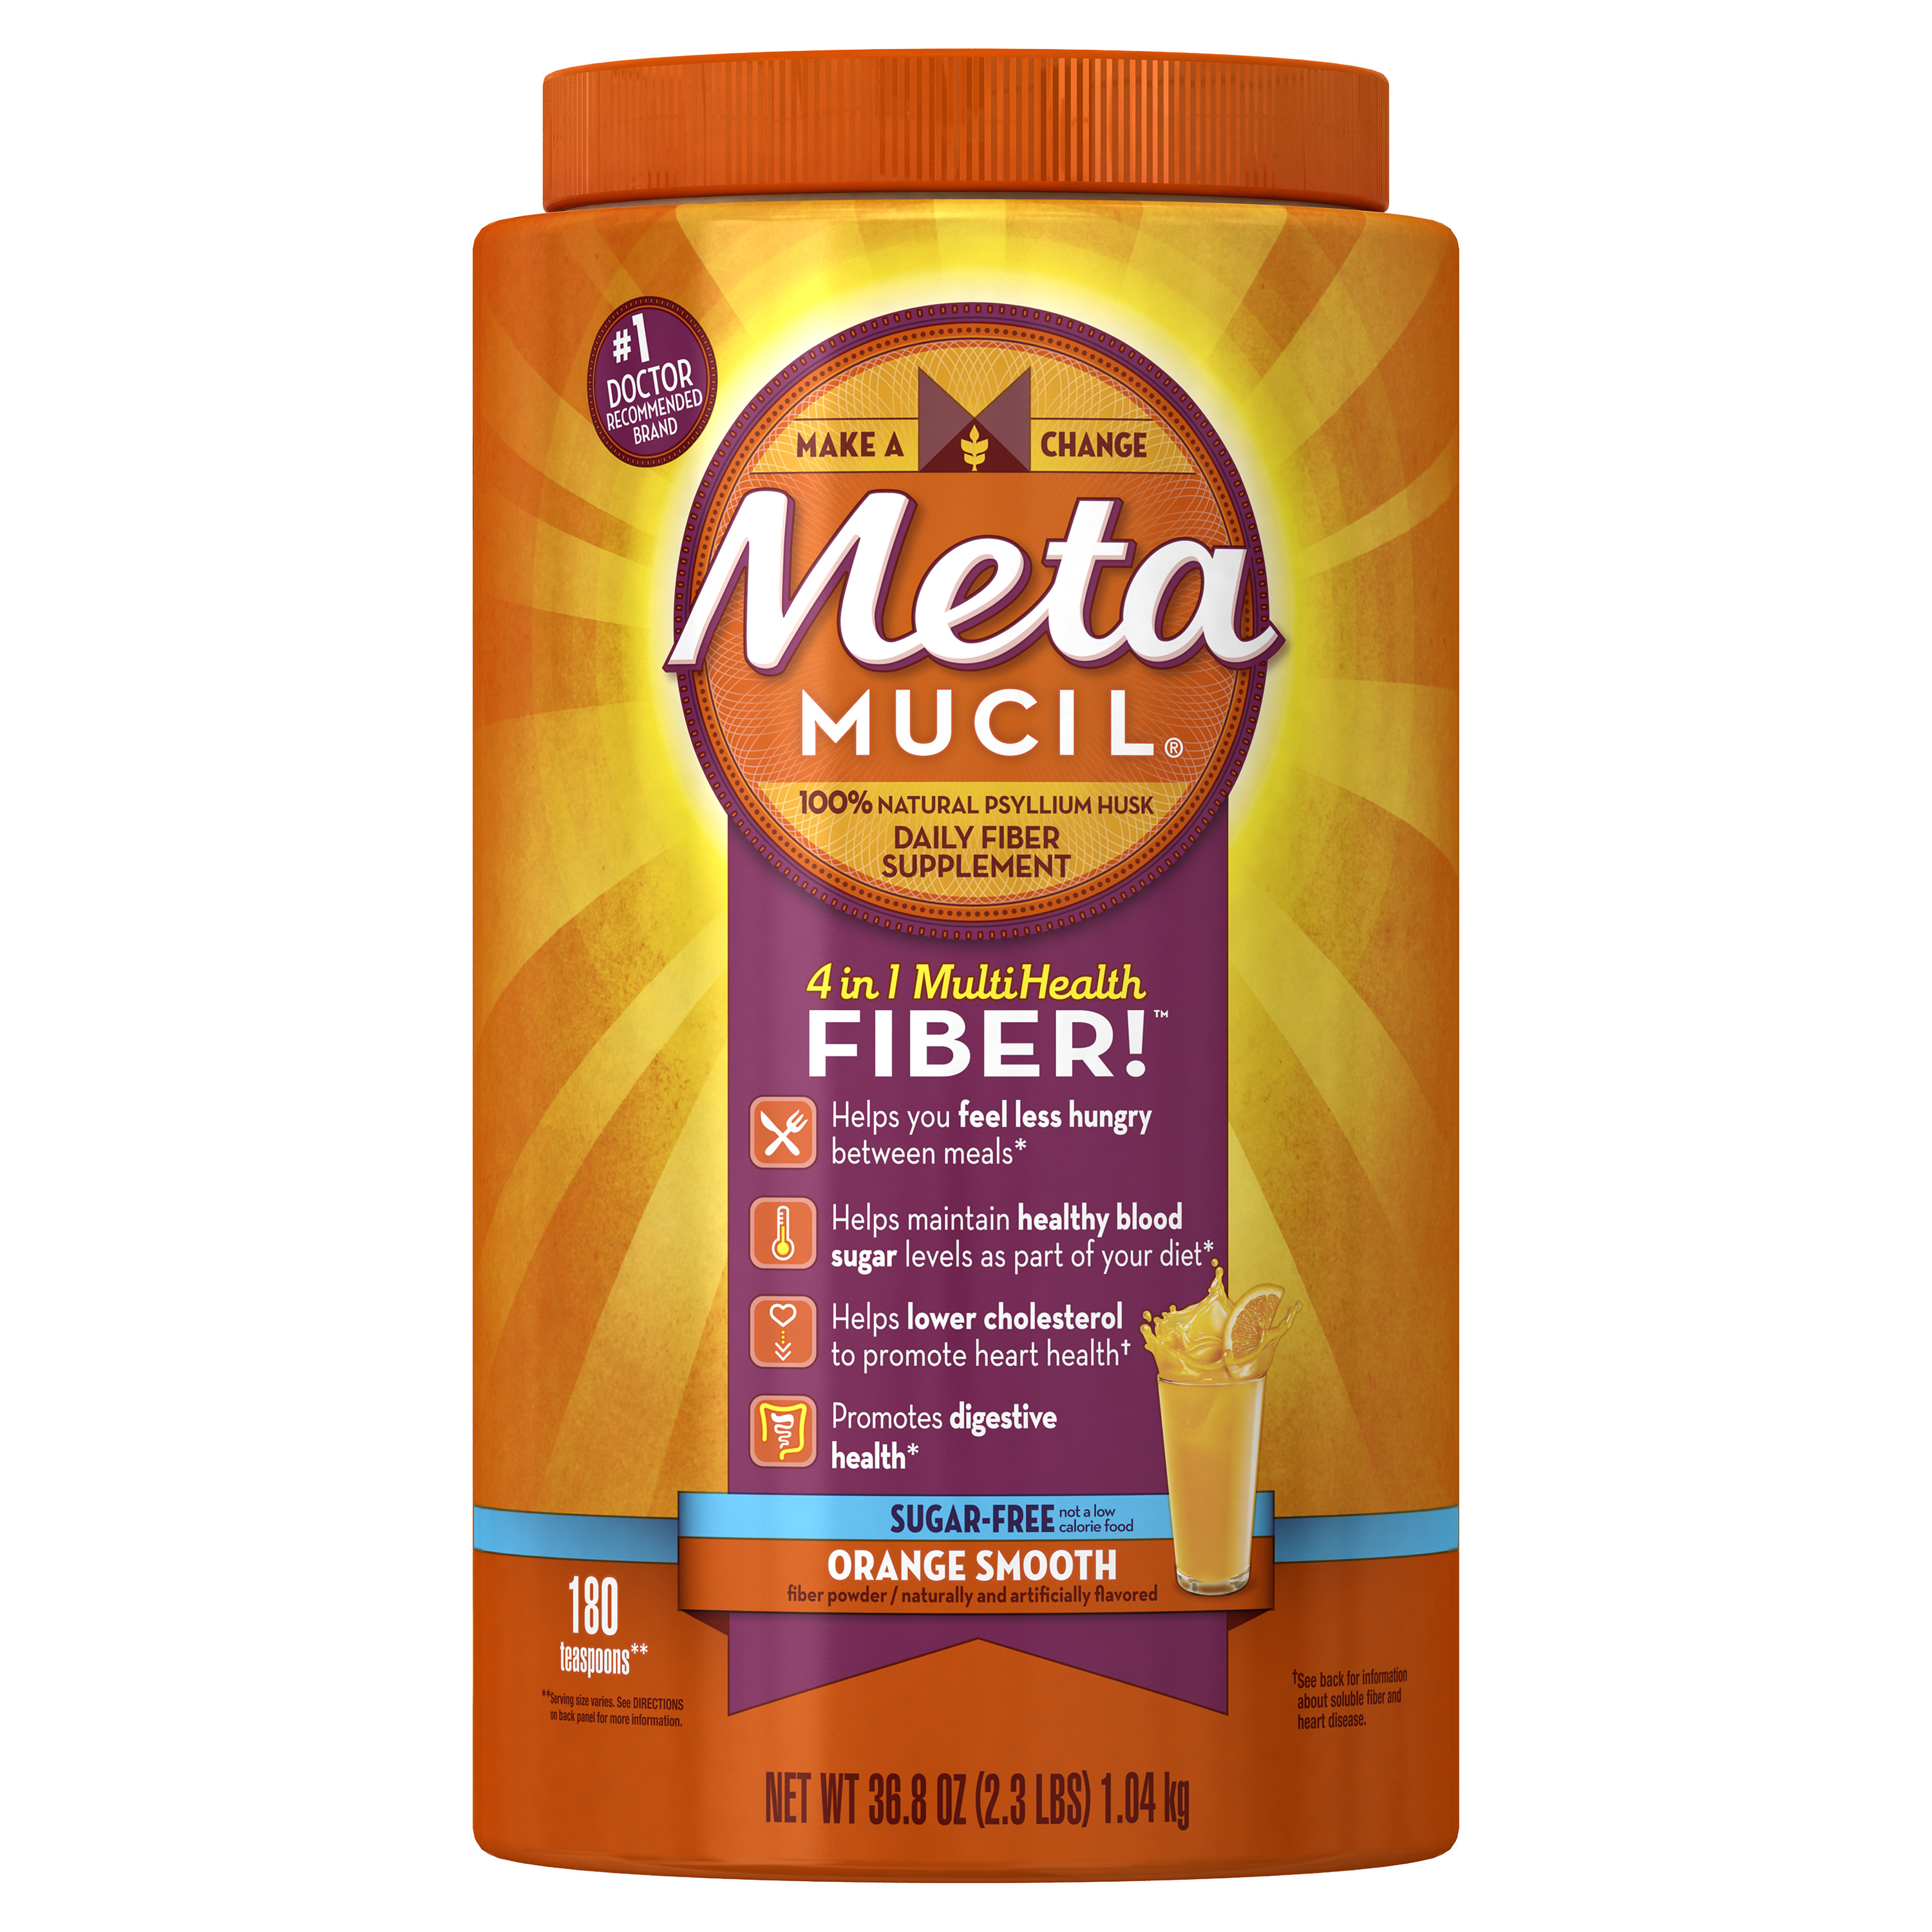 Metamucil Multi-Health Fiber Supplement Powder, 180 Servings, Sugar Free Orange